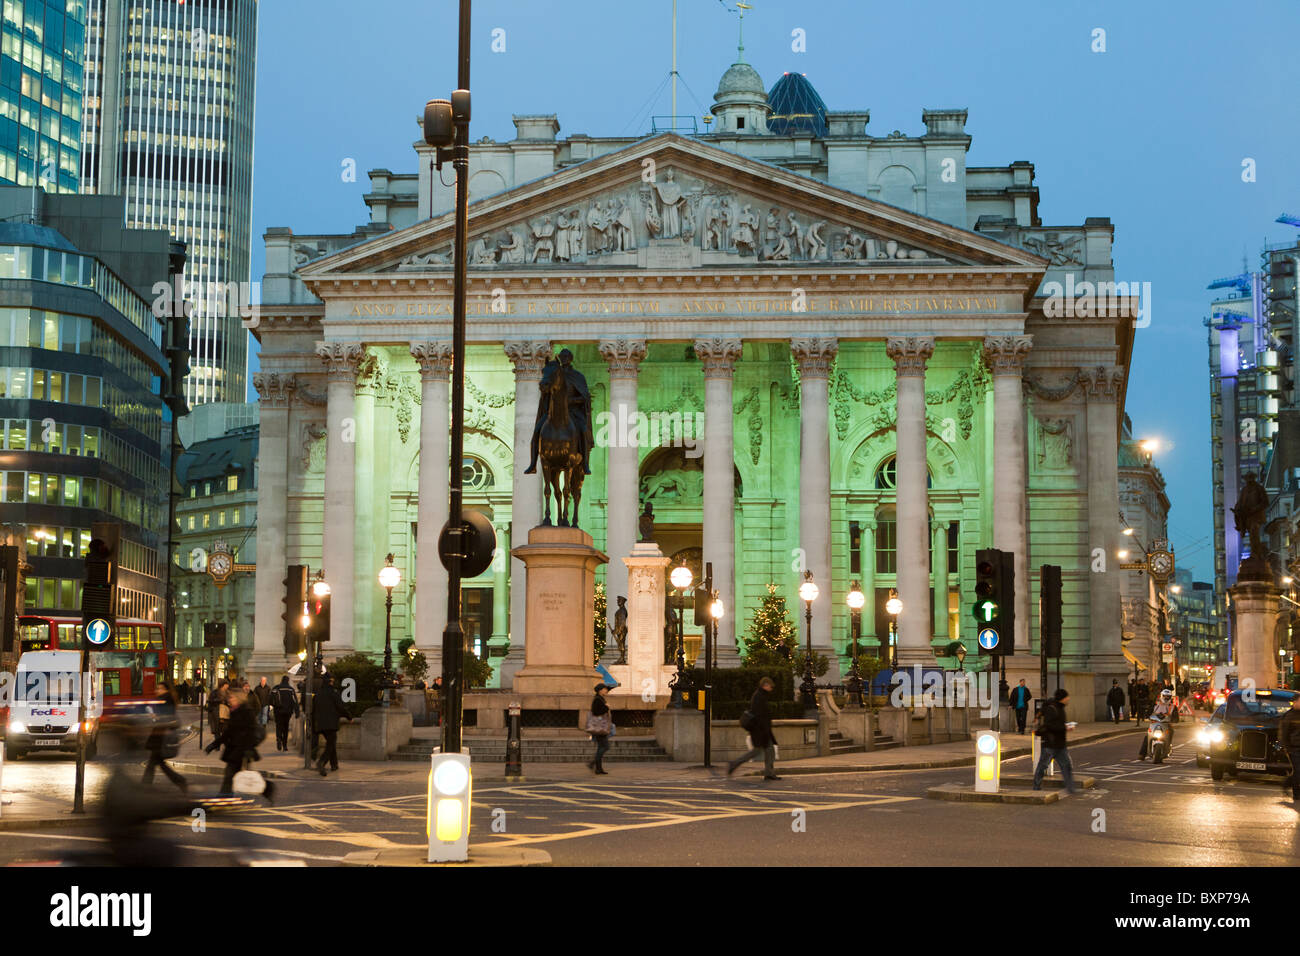 Bank Station Bank of England Museum London - Stock Image